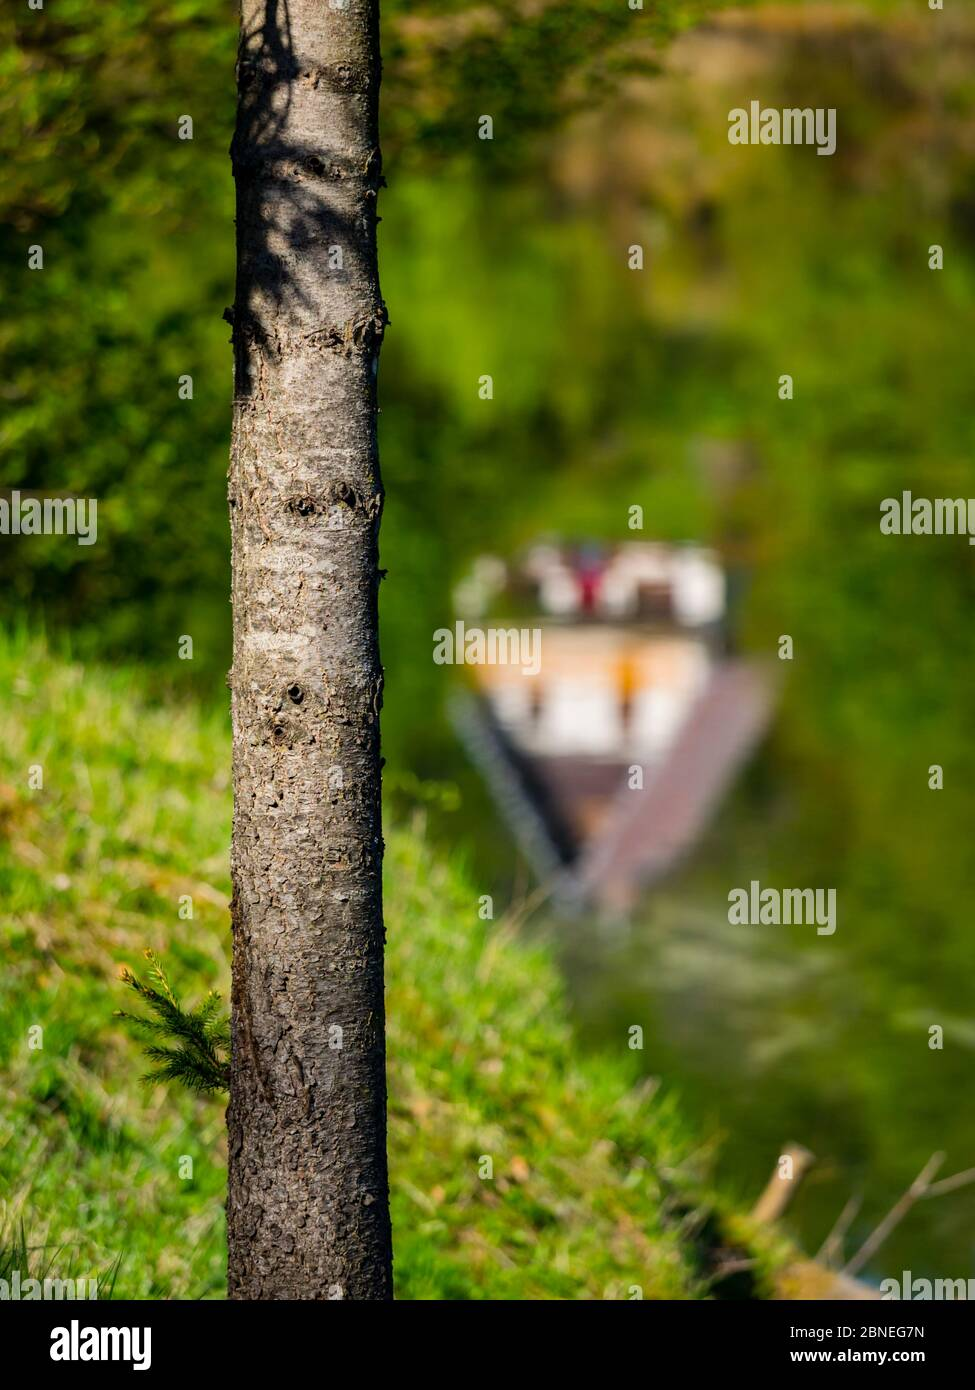 Green forest nature natural beauty isolated view on tree trunk traditional sharp roof house in blurry background blurred blur bokeh Stock Photo